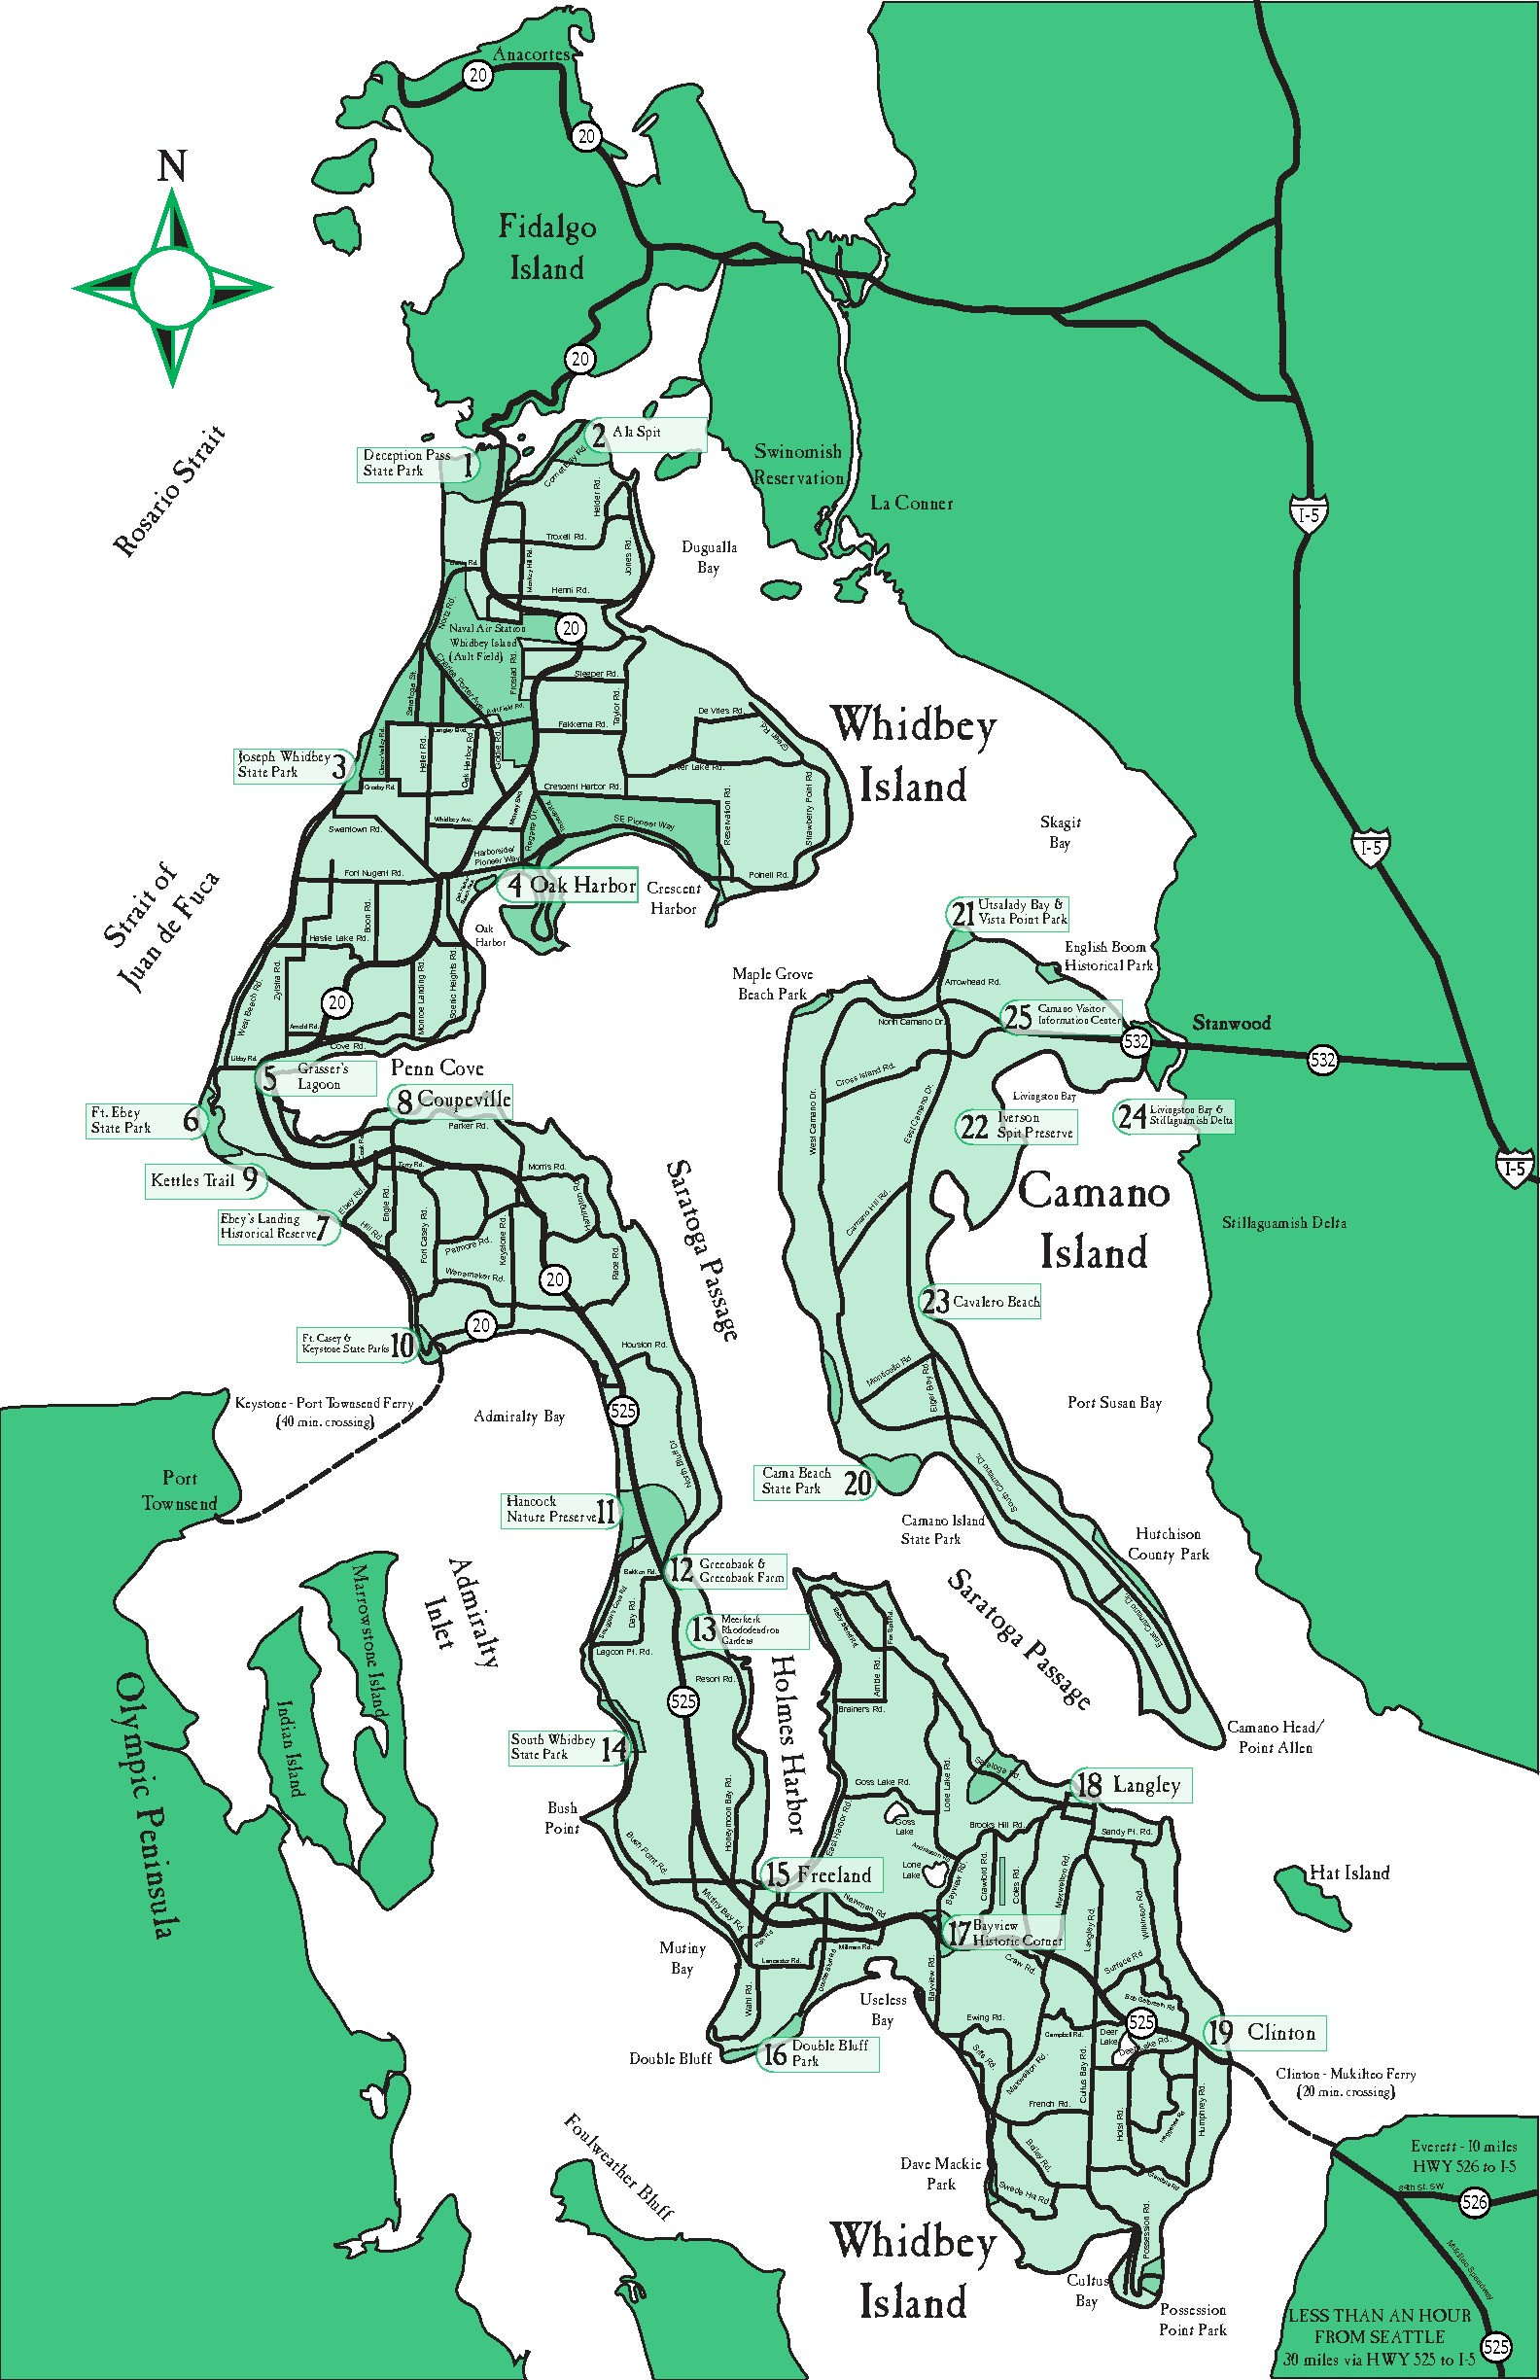 Whidbey Island Park Map Of Whidbey Island Yabsta